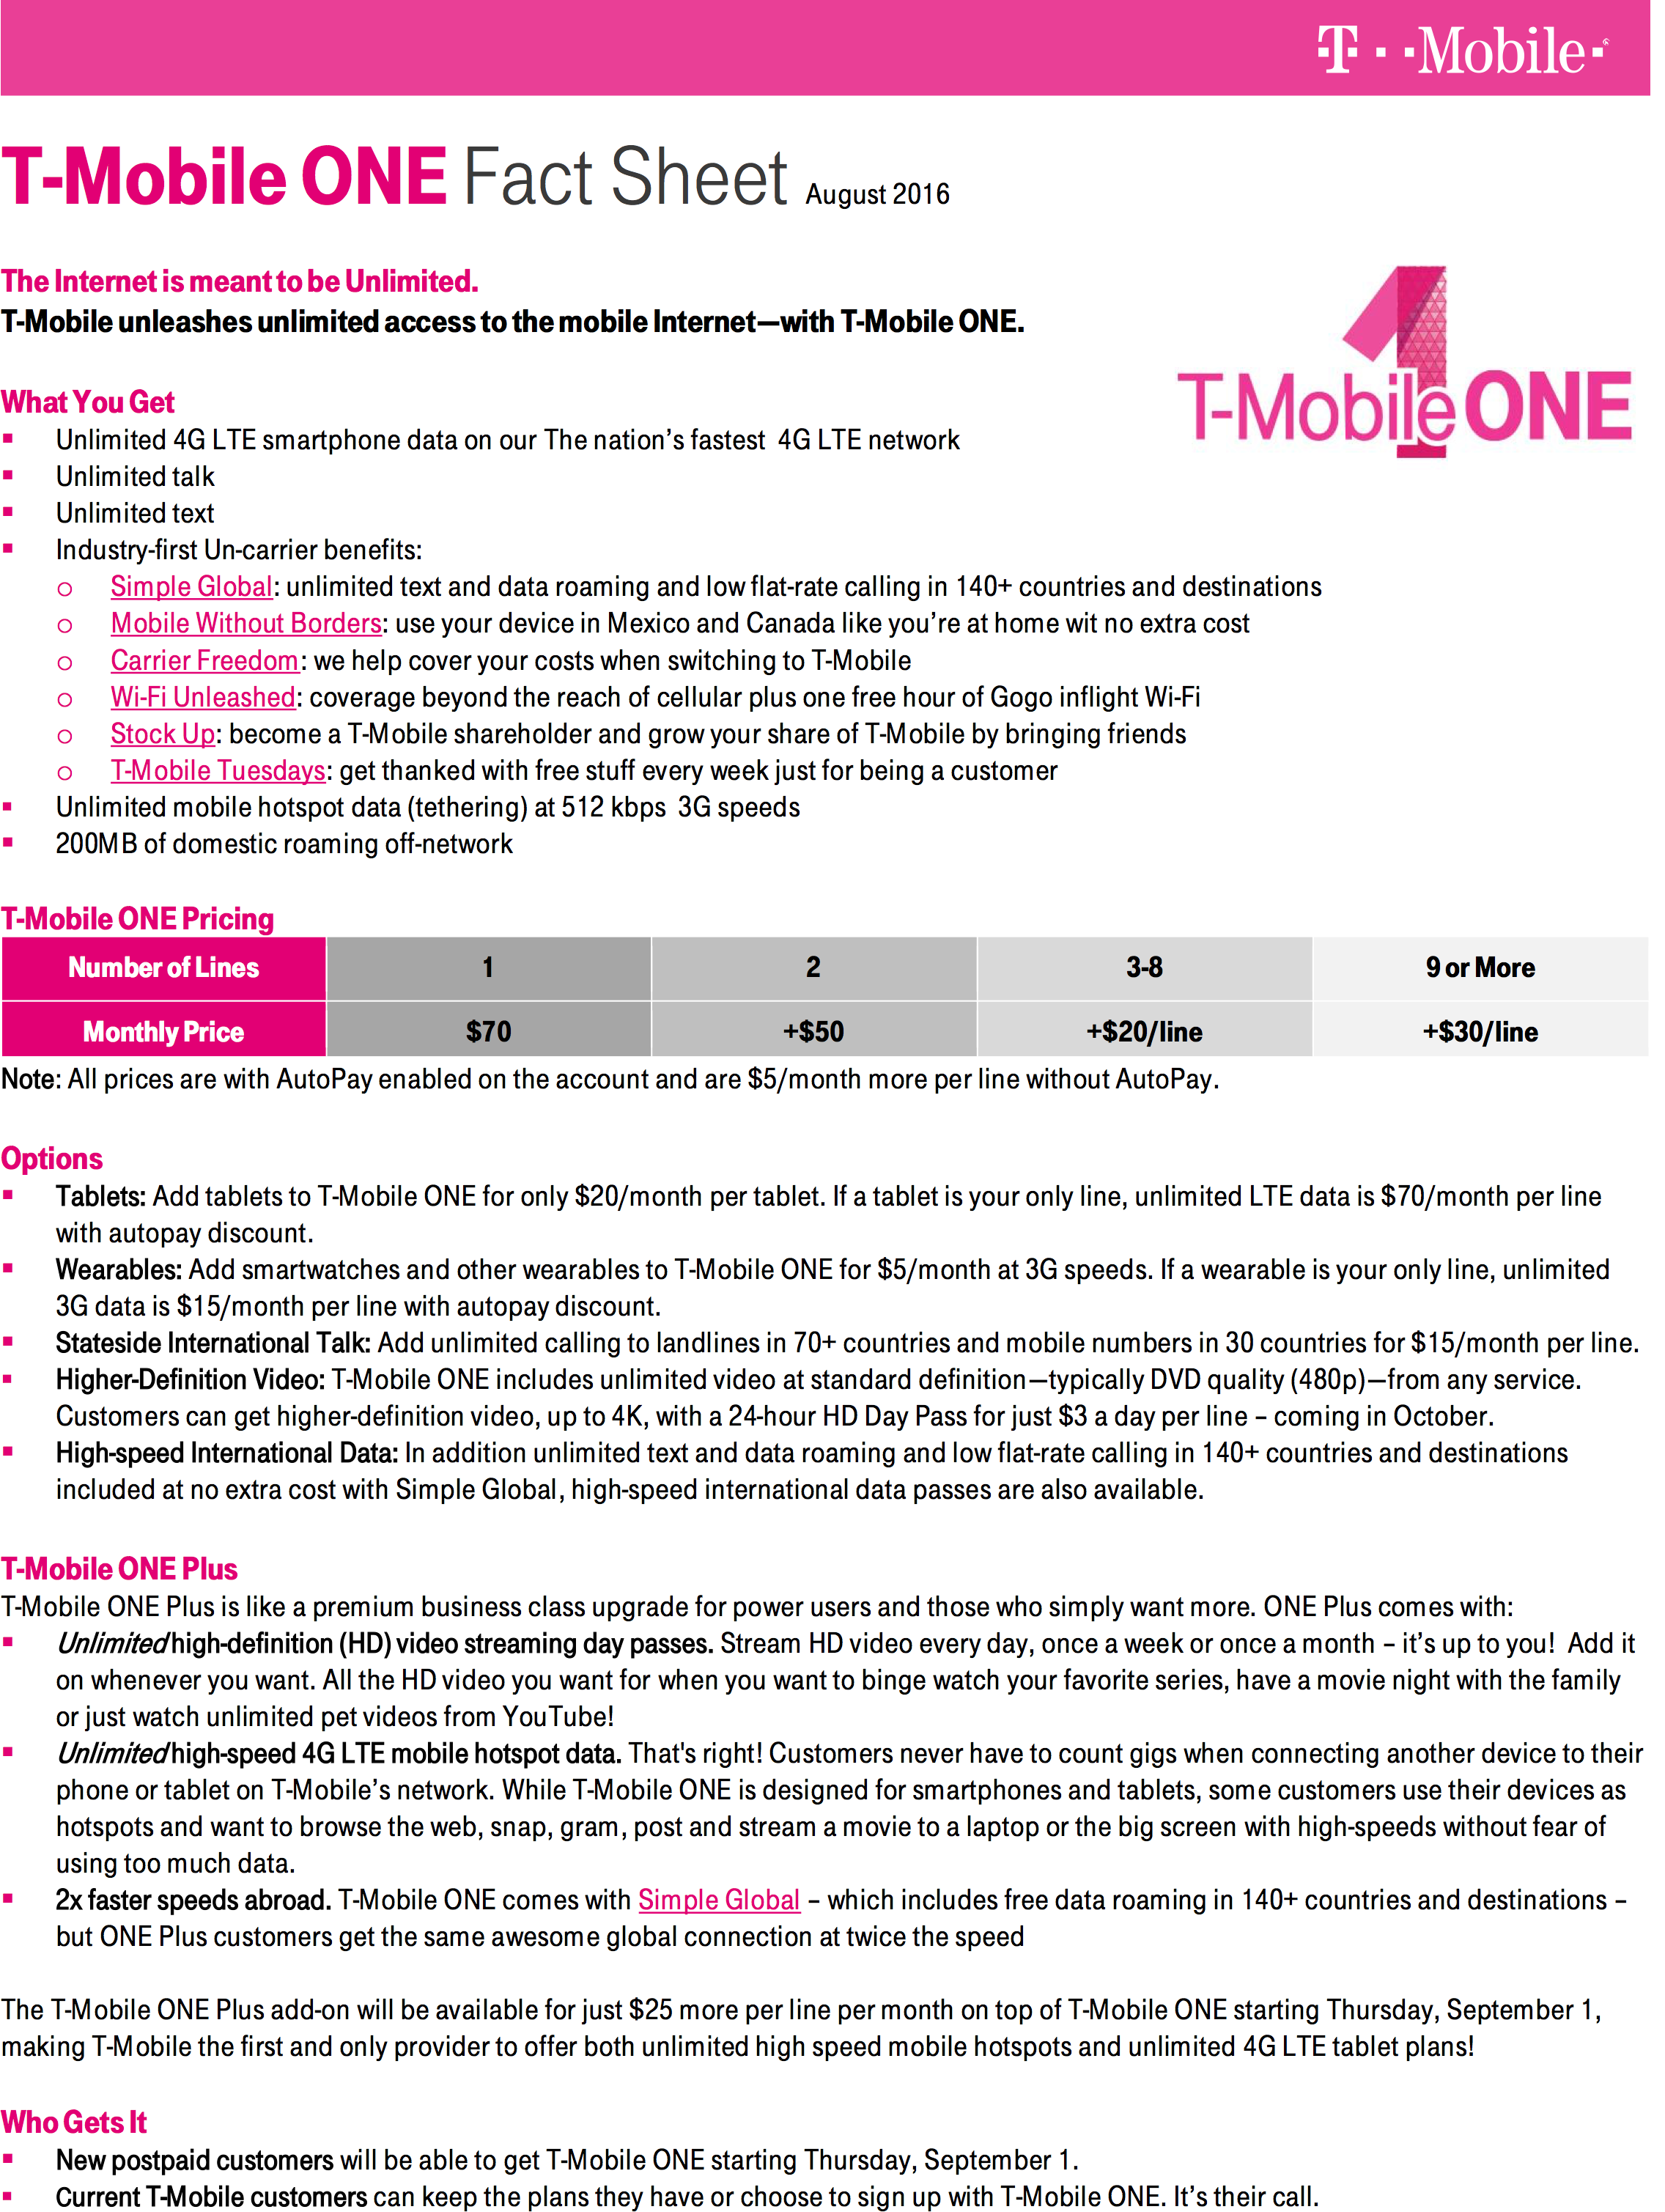 T-Mobile ONE fact sheet 002